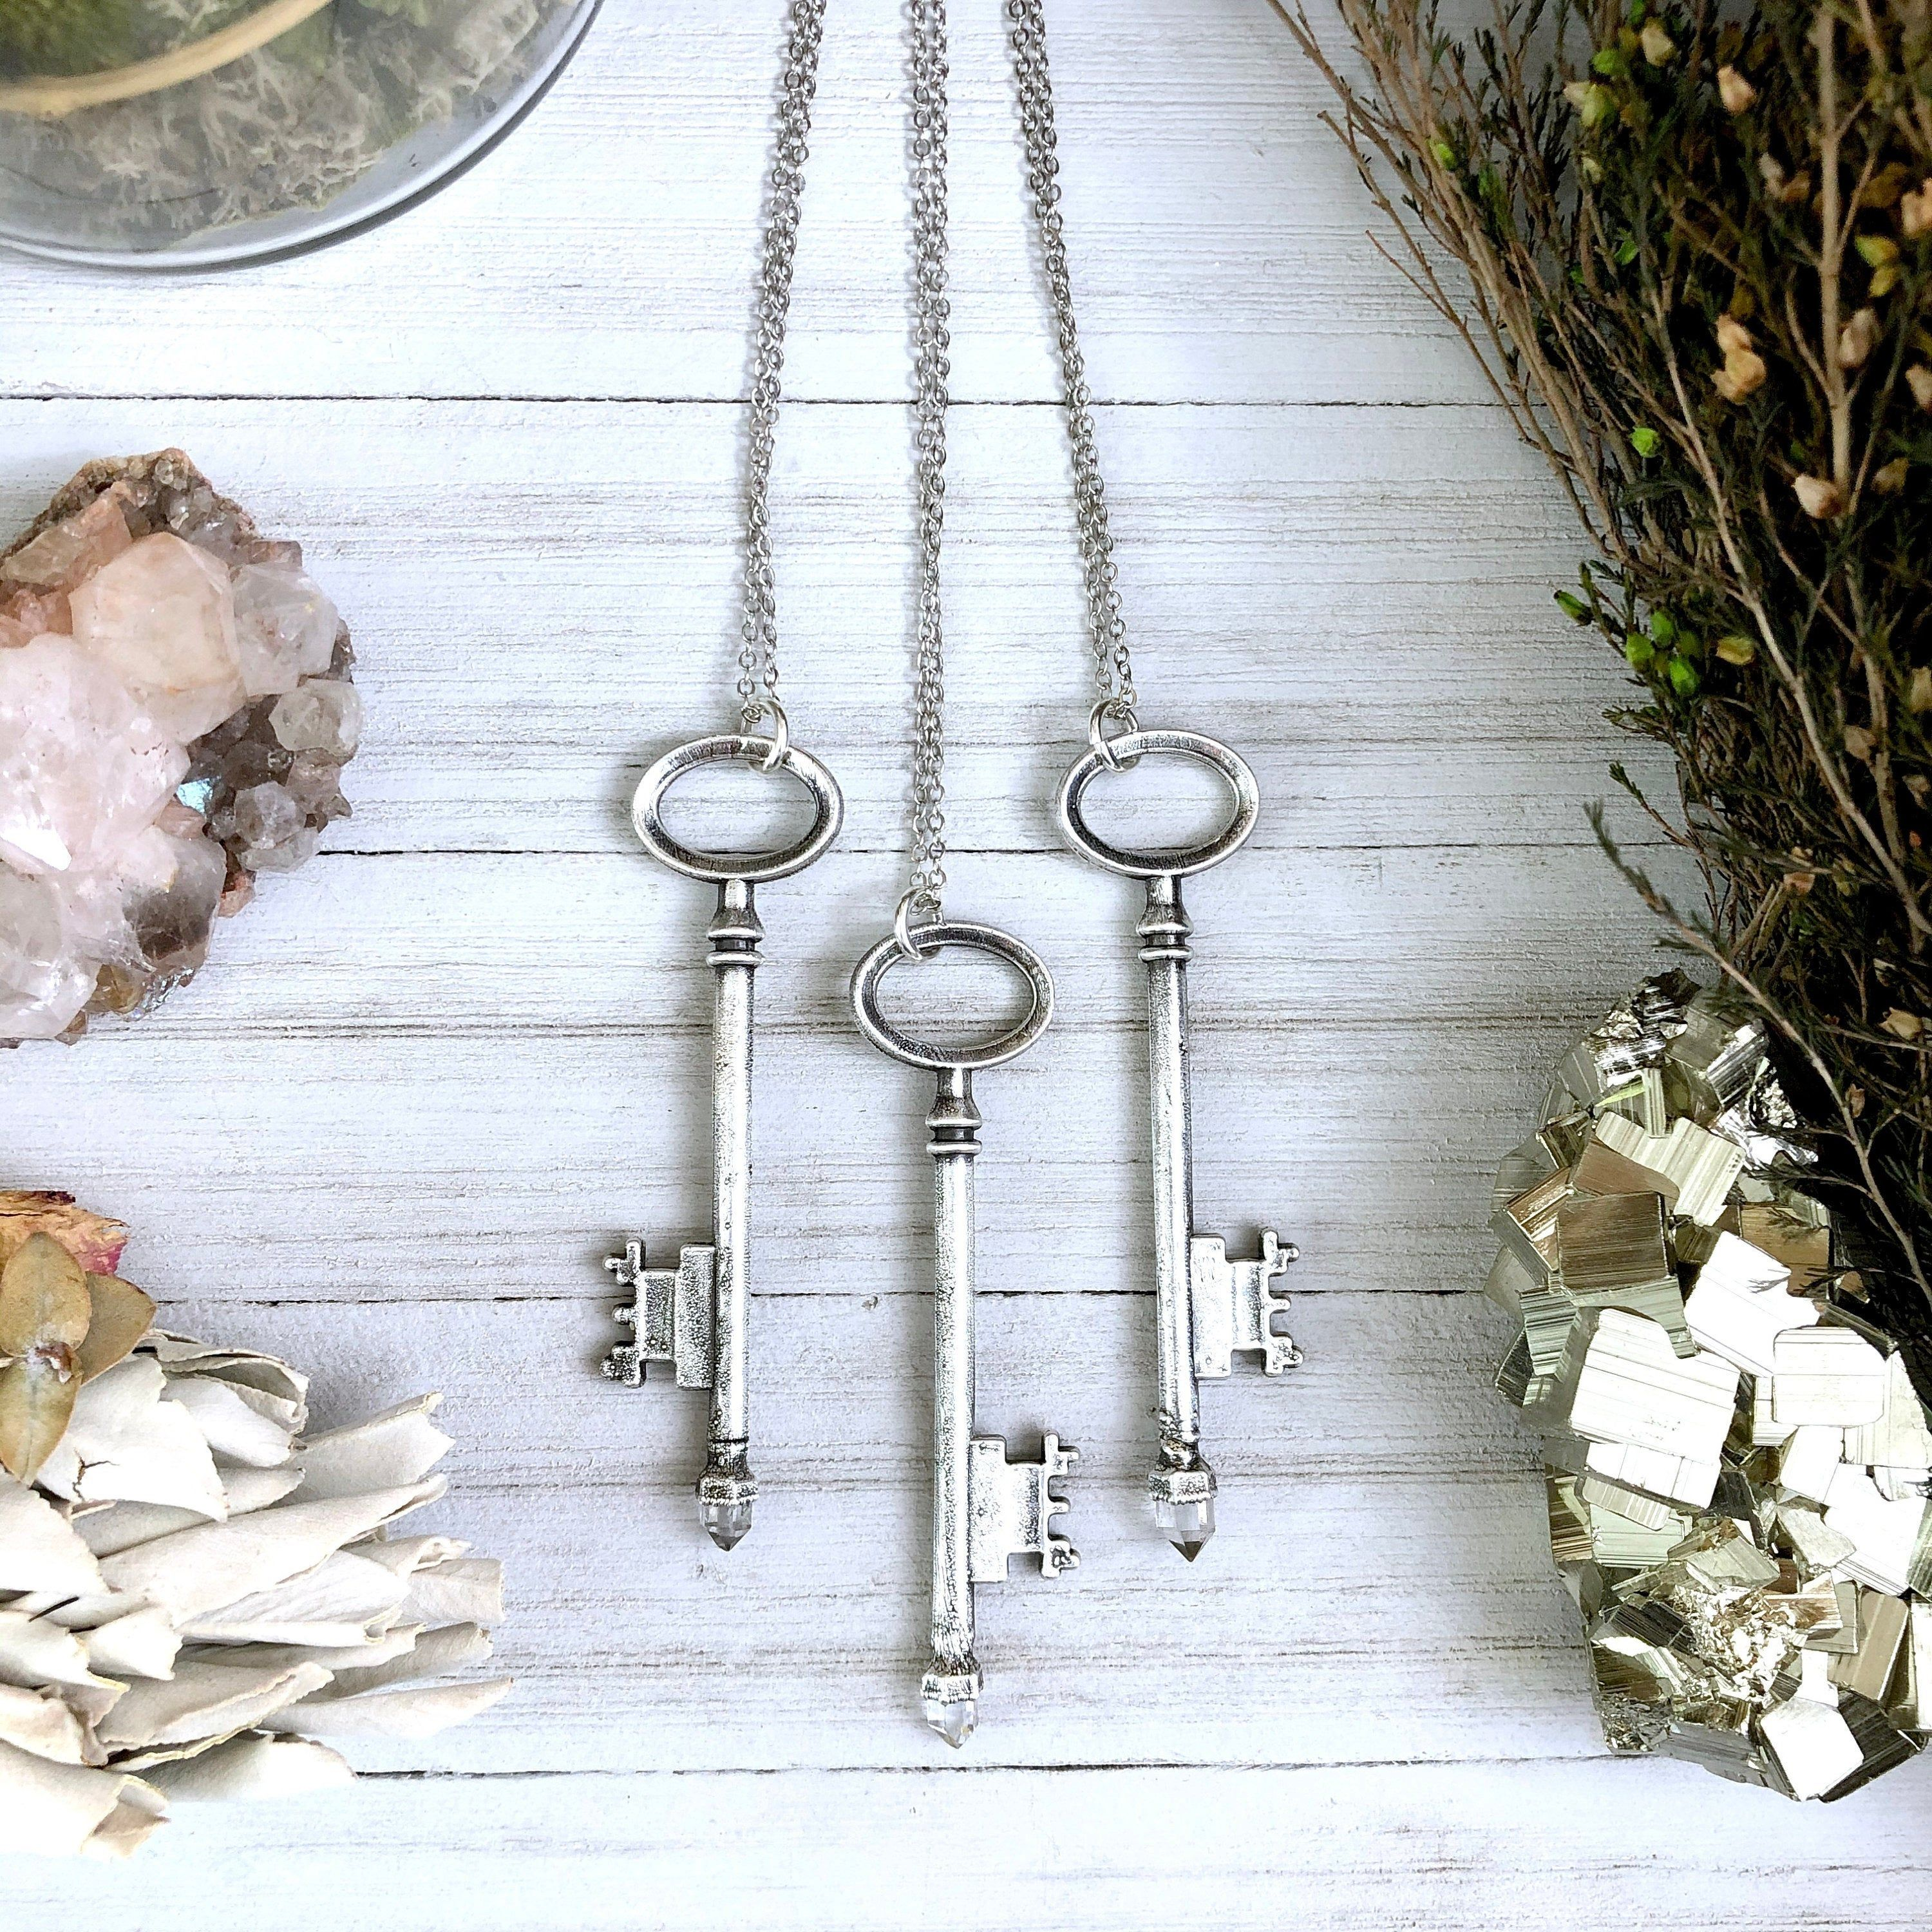 Herkimer Diamond Necklace Raw Quartz Necklace / Vintage Key Necklace Silver Skeleton Key Necklace / Raw Crystal Jewelry / Gemstone Jewelry #quartznecklace